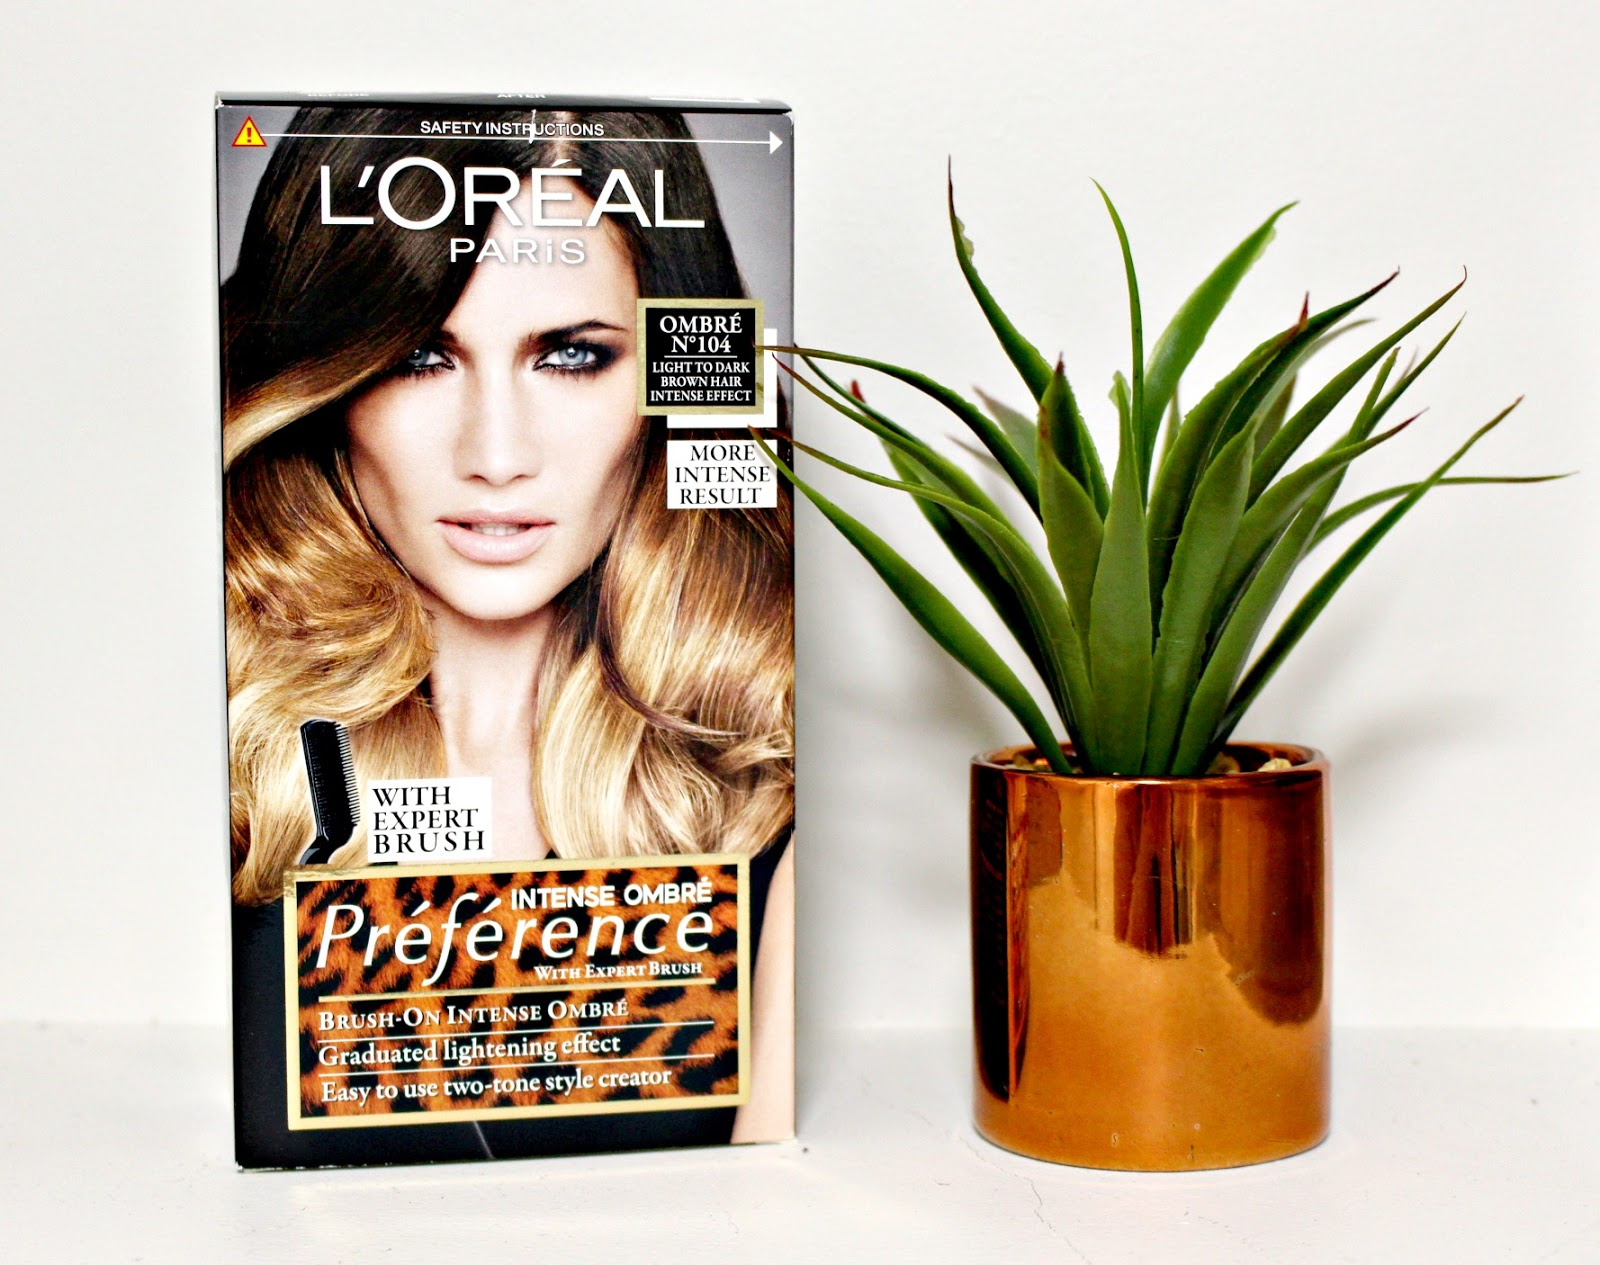 Loreal Intense Ombre Preference Review Shay Kennedy